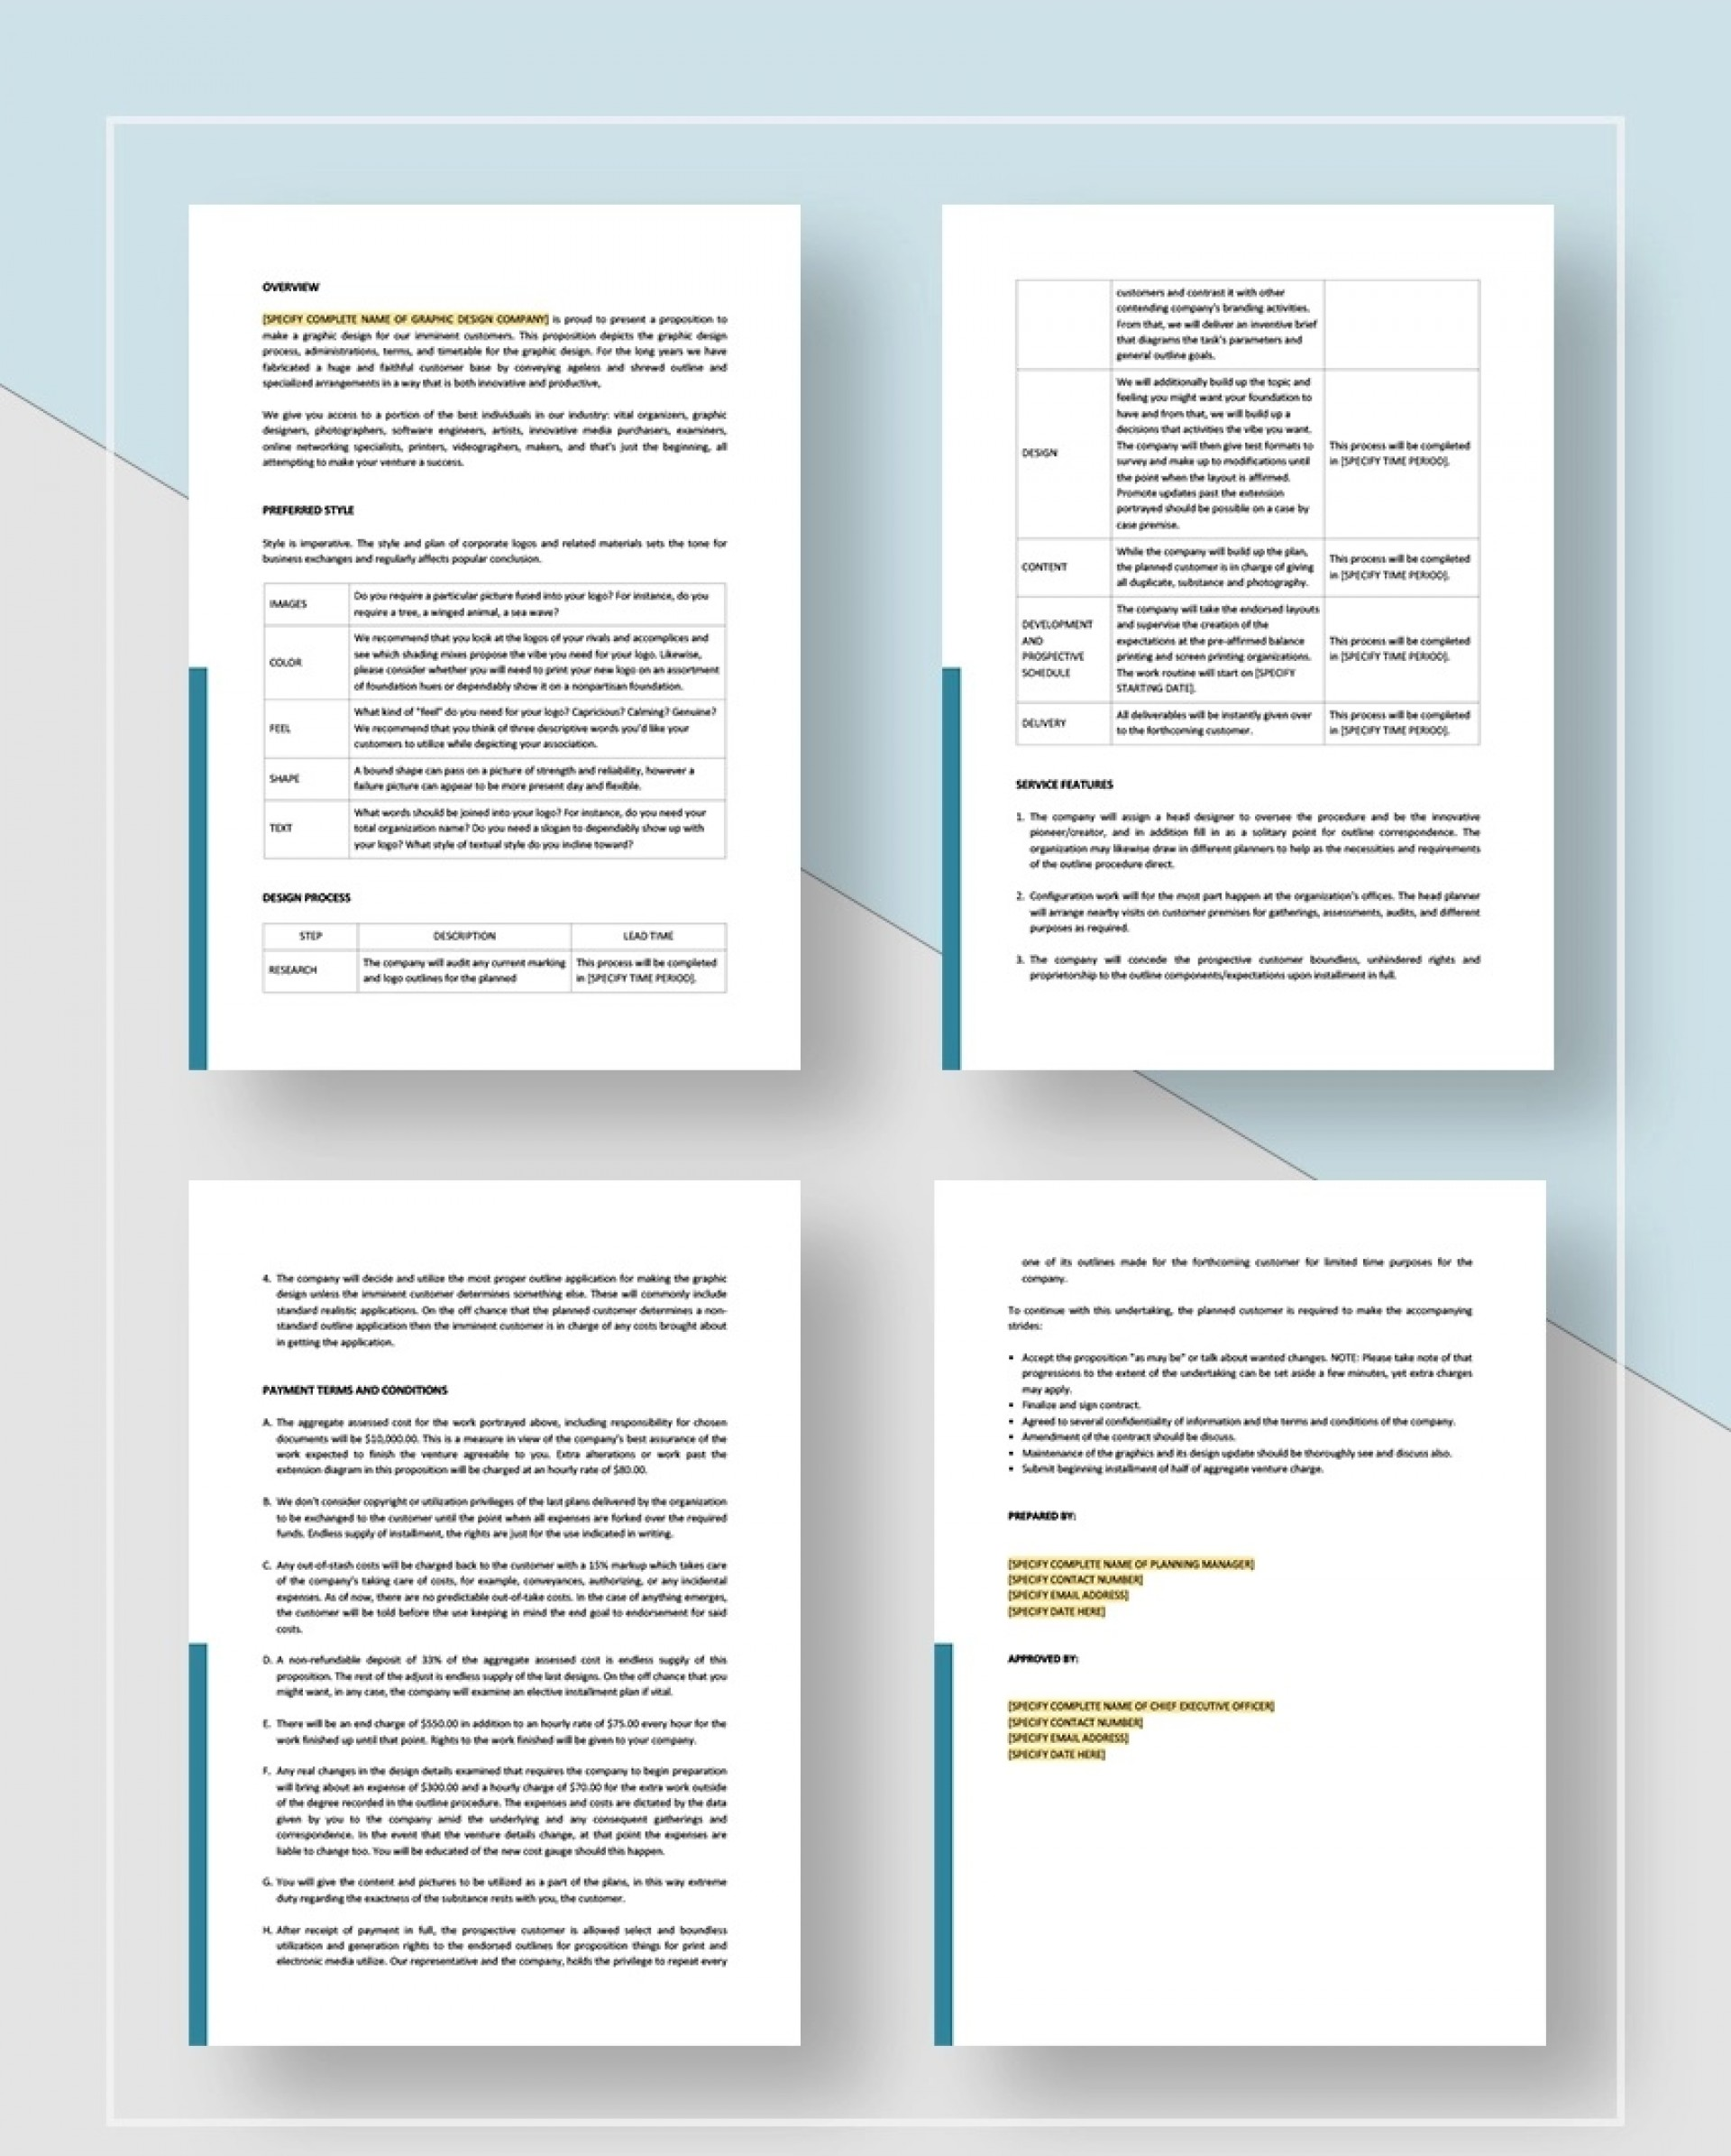 Graphic Design Proposal Template Sample Complete Jpg  Free Doc Pdf1920